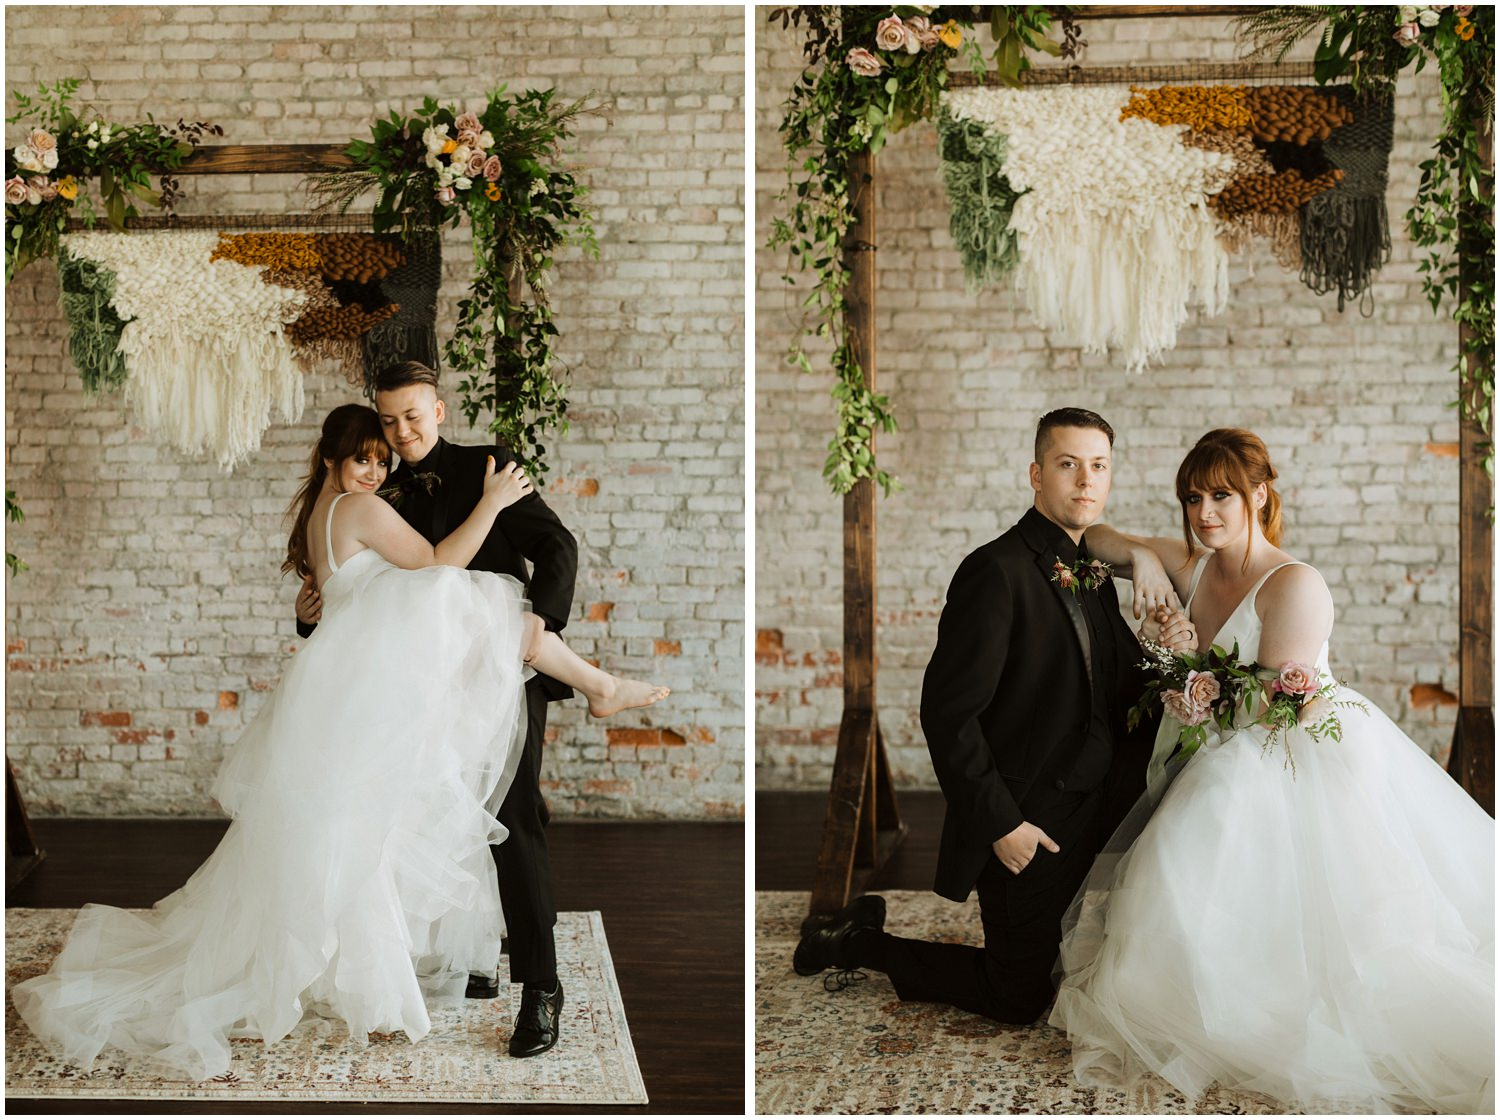 Bride and Groom Portraits 5eleven Palafox Wedding